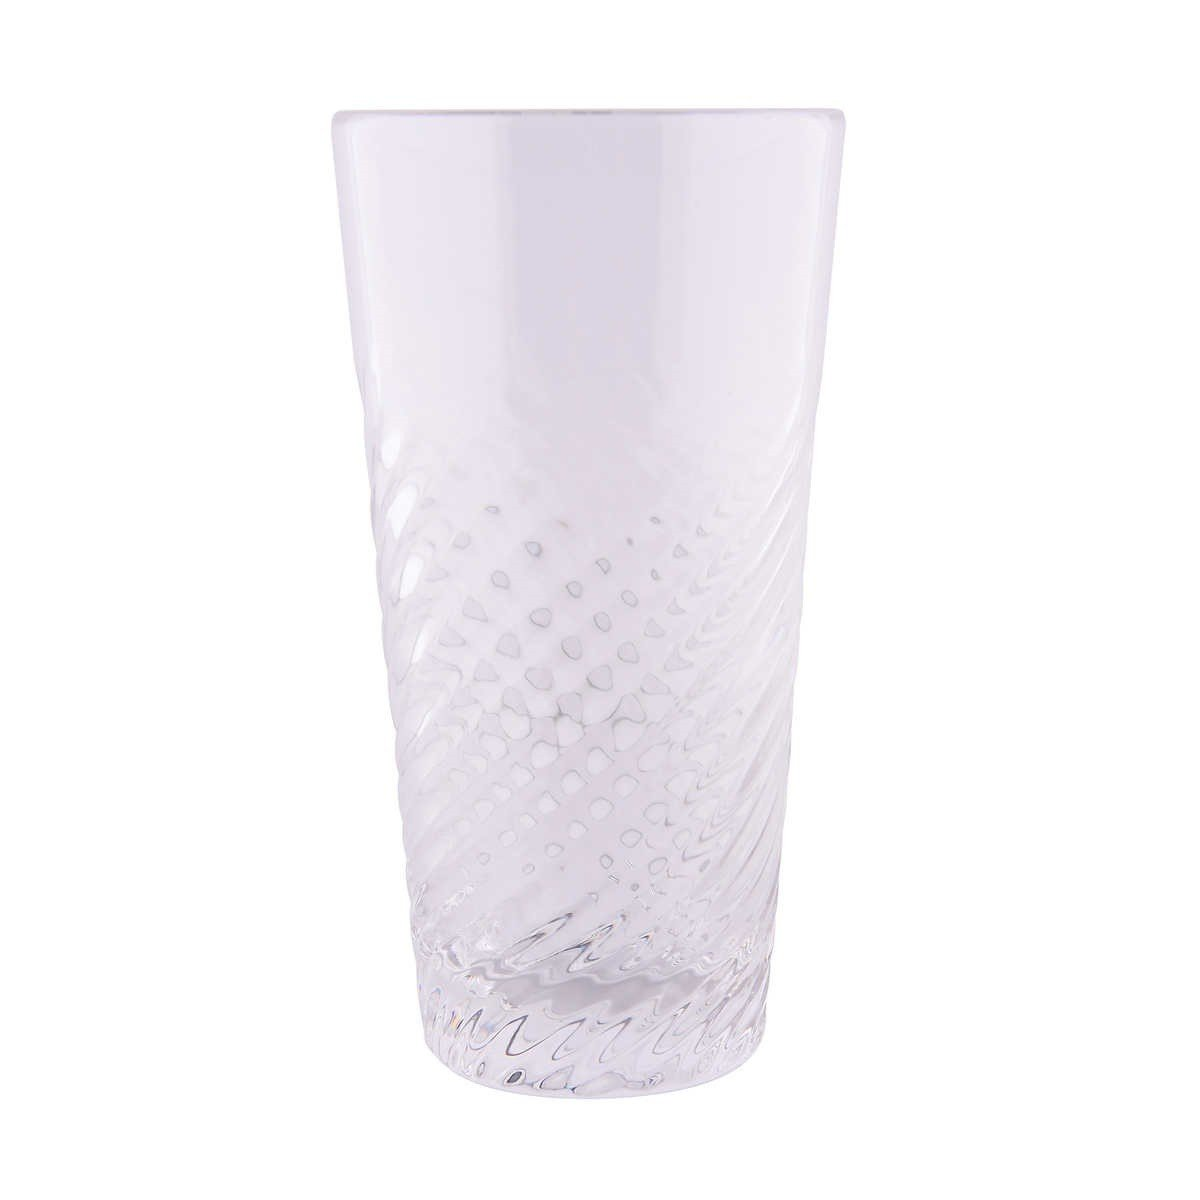 8 Piece Clear Acrylic Tumbler Set 24oz Suitable for Indoors /& Outdoors BPA-Free /& Durable FDG Brands